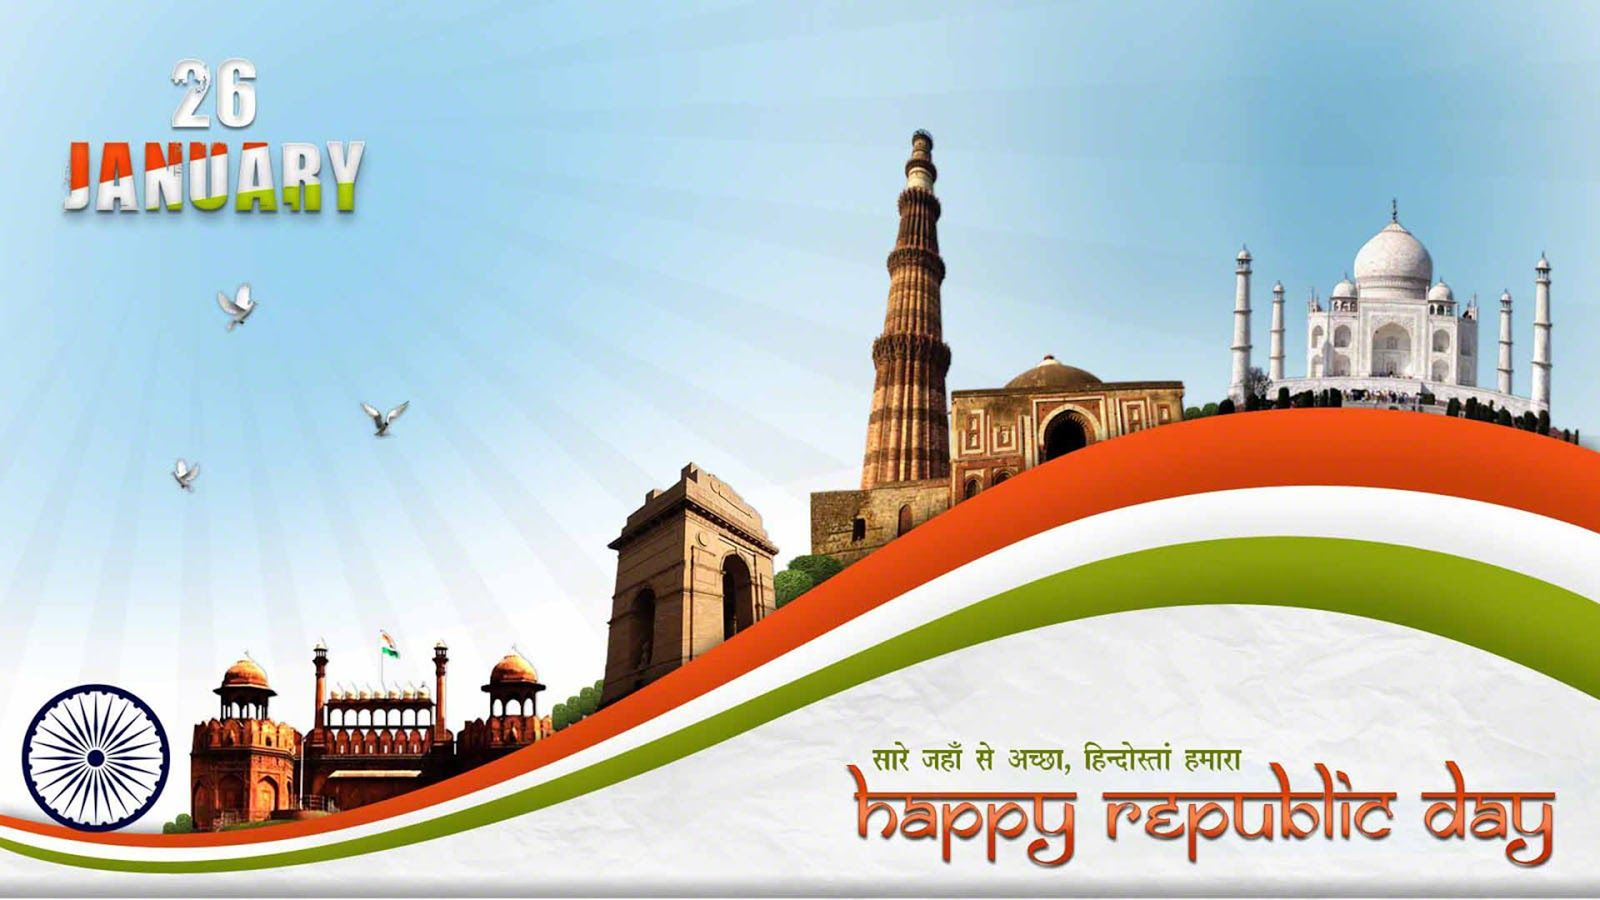 Happy Republic Day Wallpapers Hd Download Free 1080p Happy Rebulic